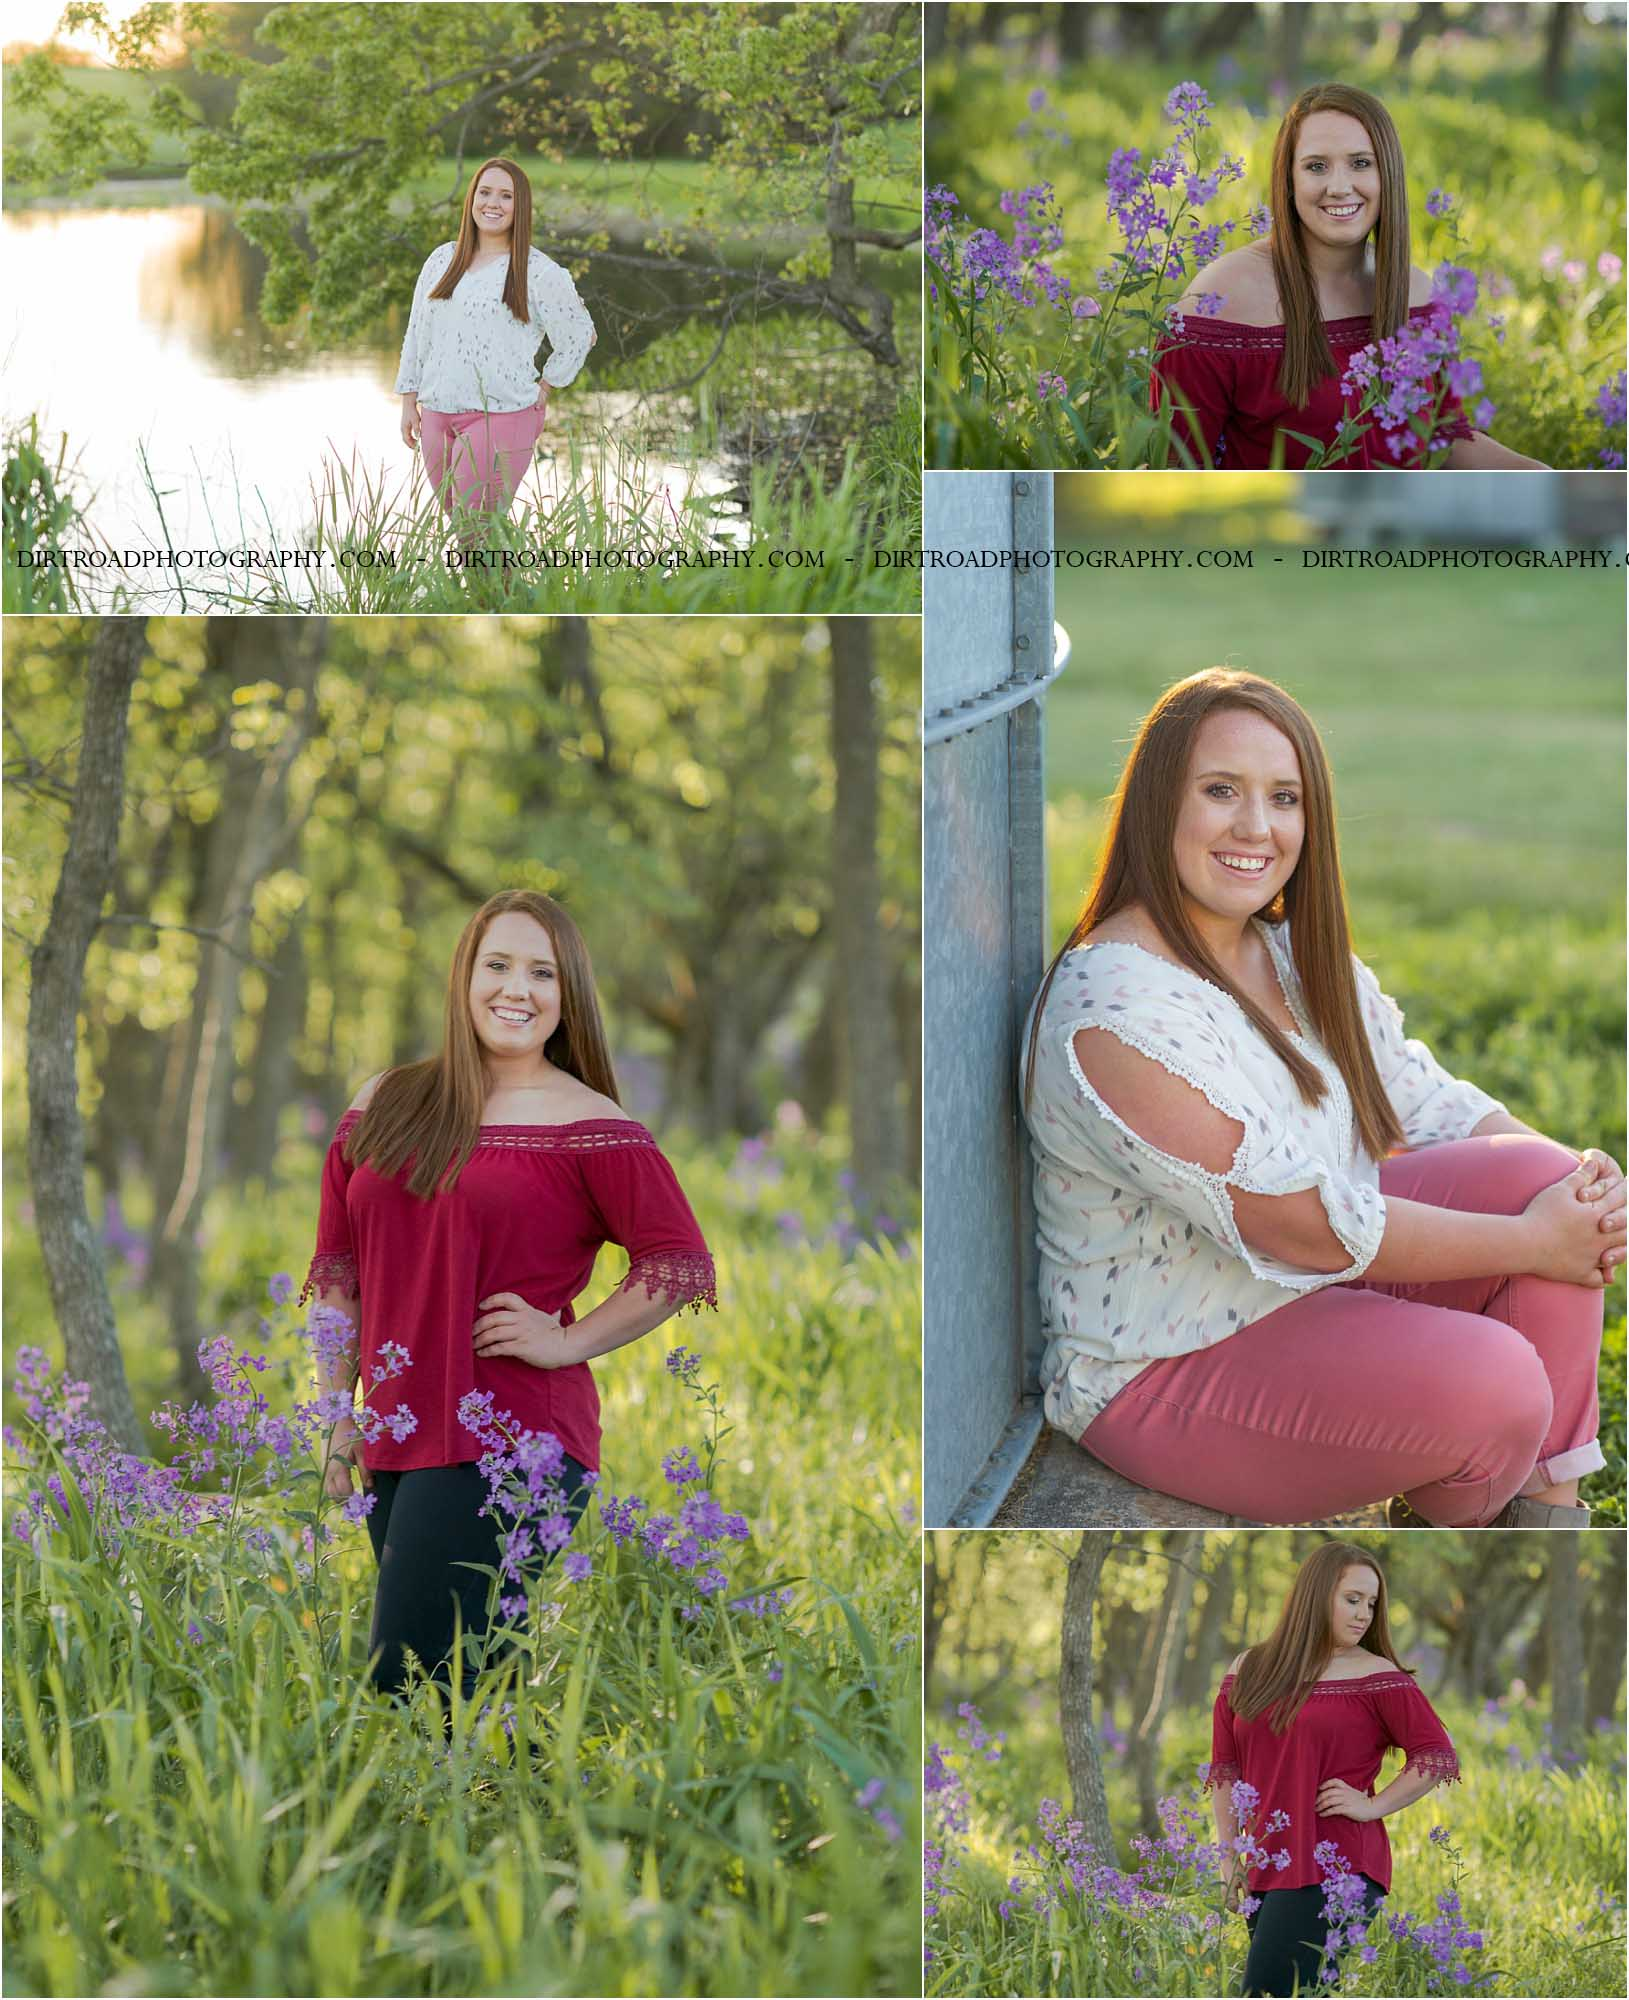 images of high school girl senior photos named janae nitzsche of milford nebraska who went to milford high school in nebraska and is part of the class of 2020. photos were taken near swanton nebraska in saline county. photo includes purple spring flowers at sunset with girl in black jegging jeans and maroon off the shoulders top with lace details standing in tall natural grass with trees surrounding her. teen has long red and brown colored hair. photos taken at sunset near water and farm pond. photographer is kelsey homolka nerud of wilber nebraska who specializes in high school senior photography and senior pictures.